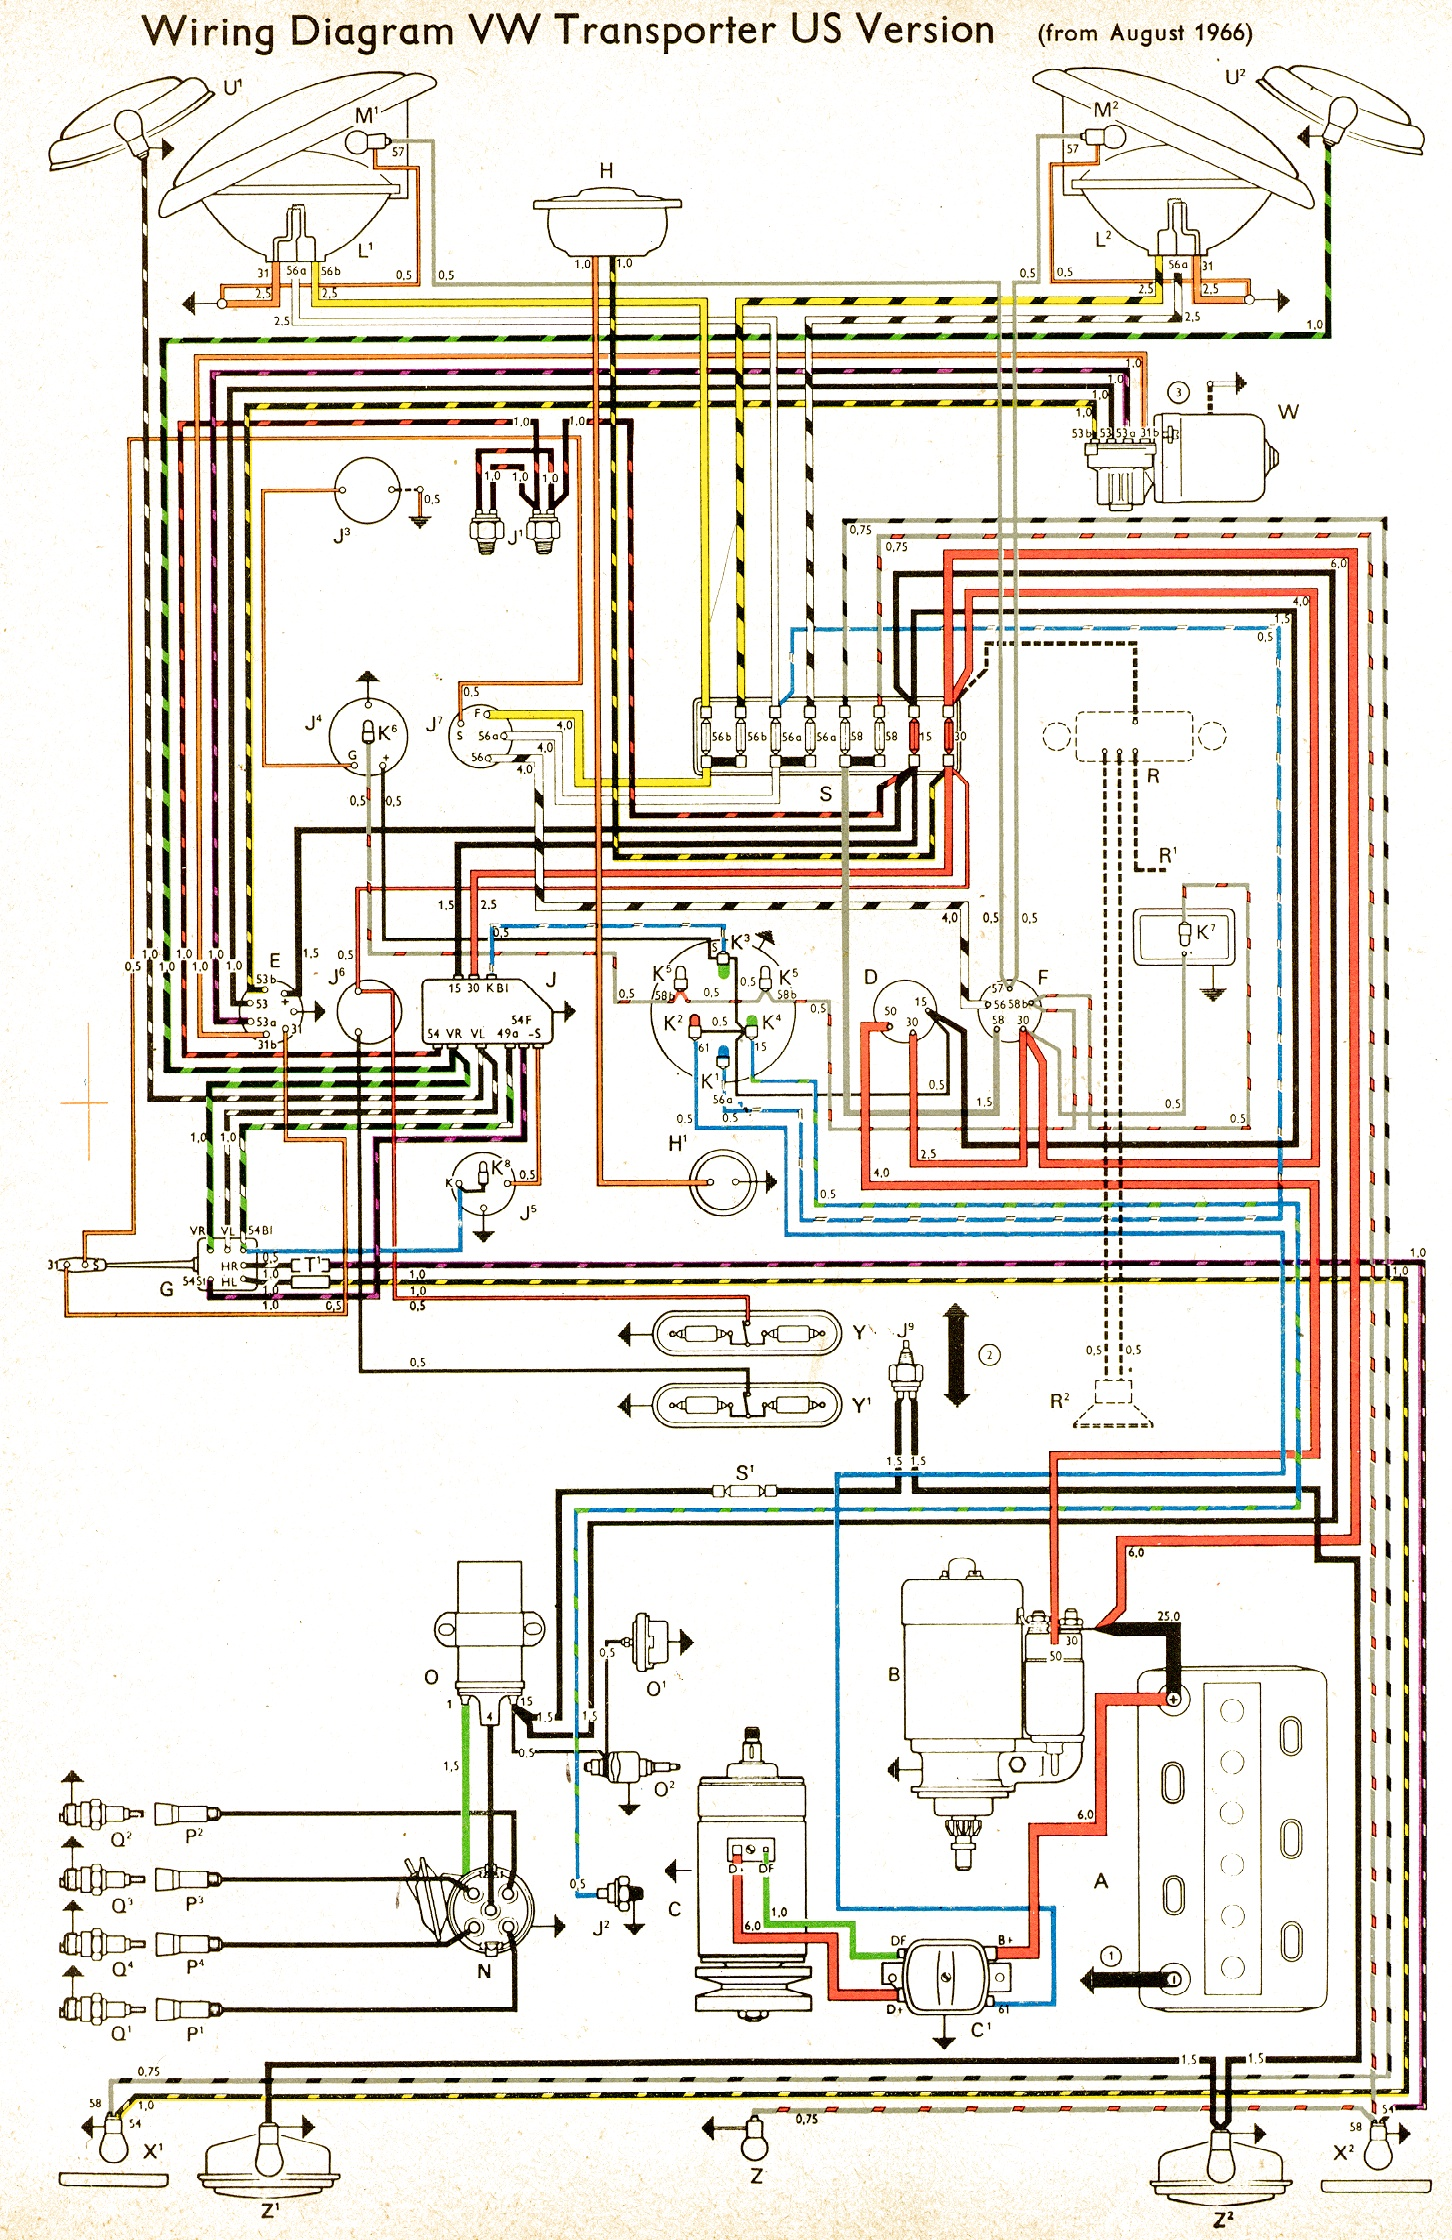 Vw Bus Regulator Wiring List Of Schematic Circuit Diagram 1975 Plymouth Valiant Vintagebus Com And Other Diagrams Rh